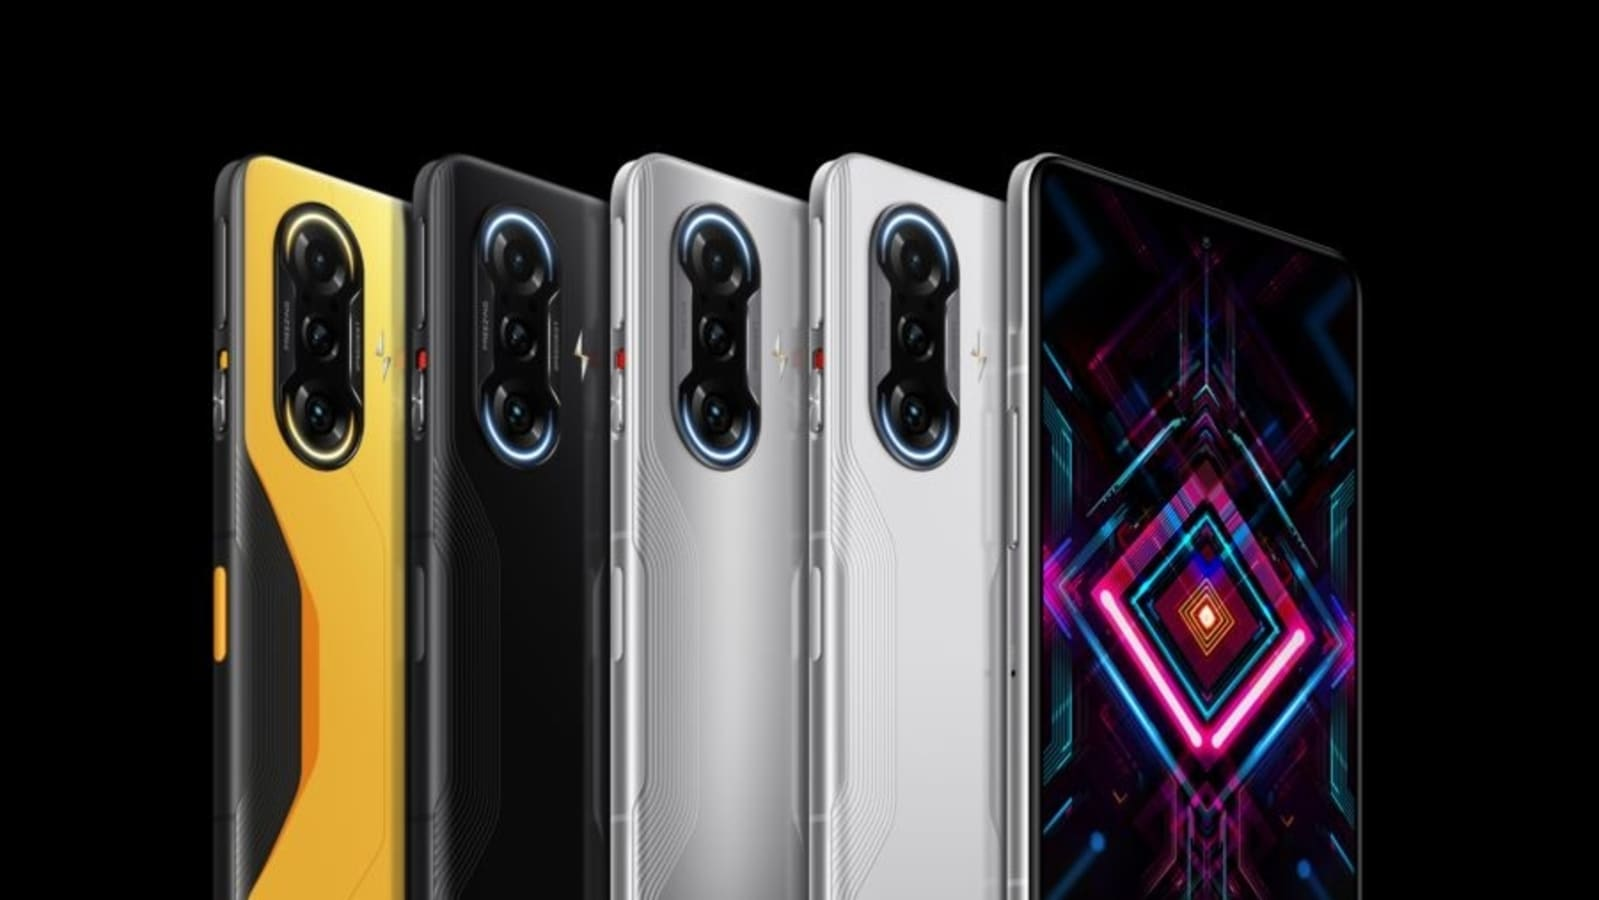 Poco F3 GT teased color variations and designs;  look at Predator Black and Gunmetal Silver